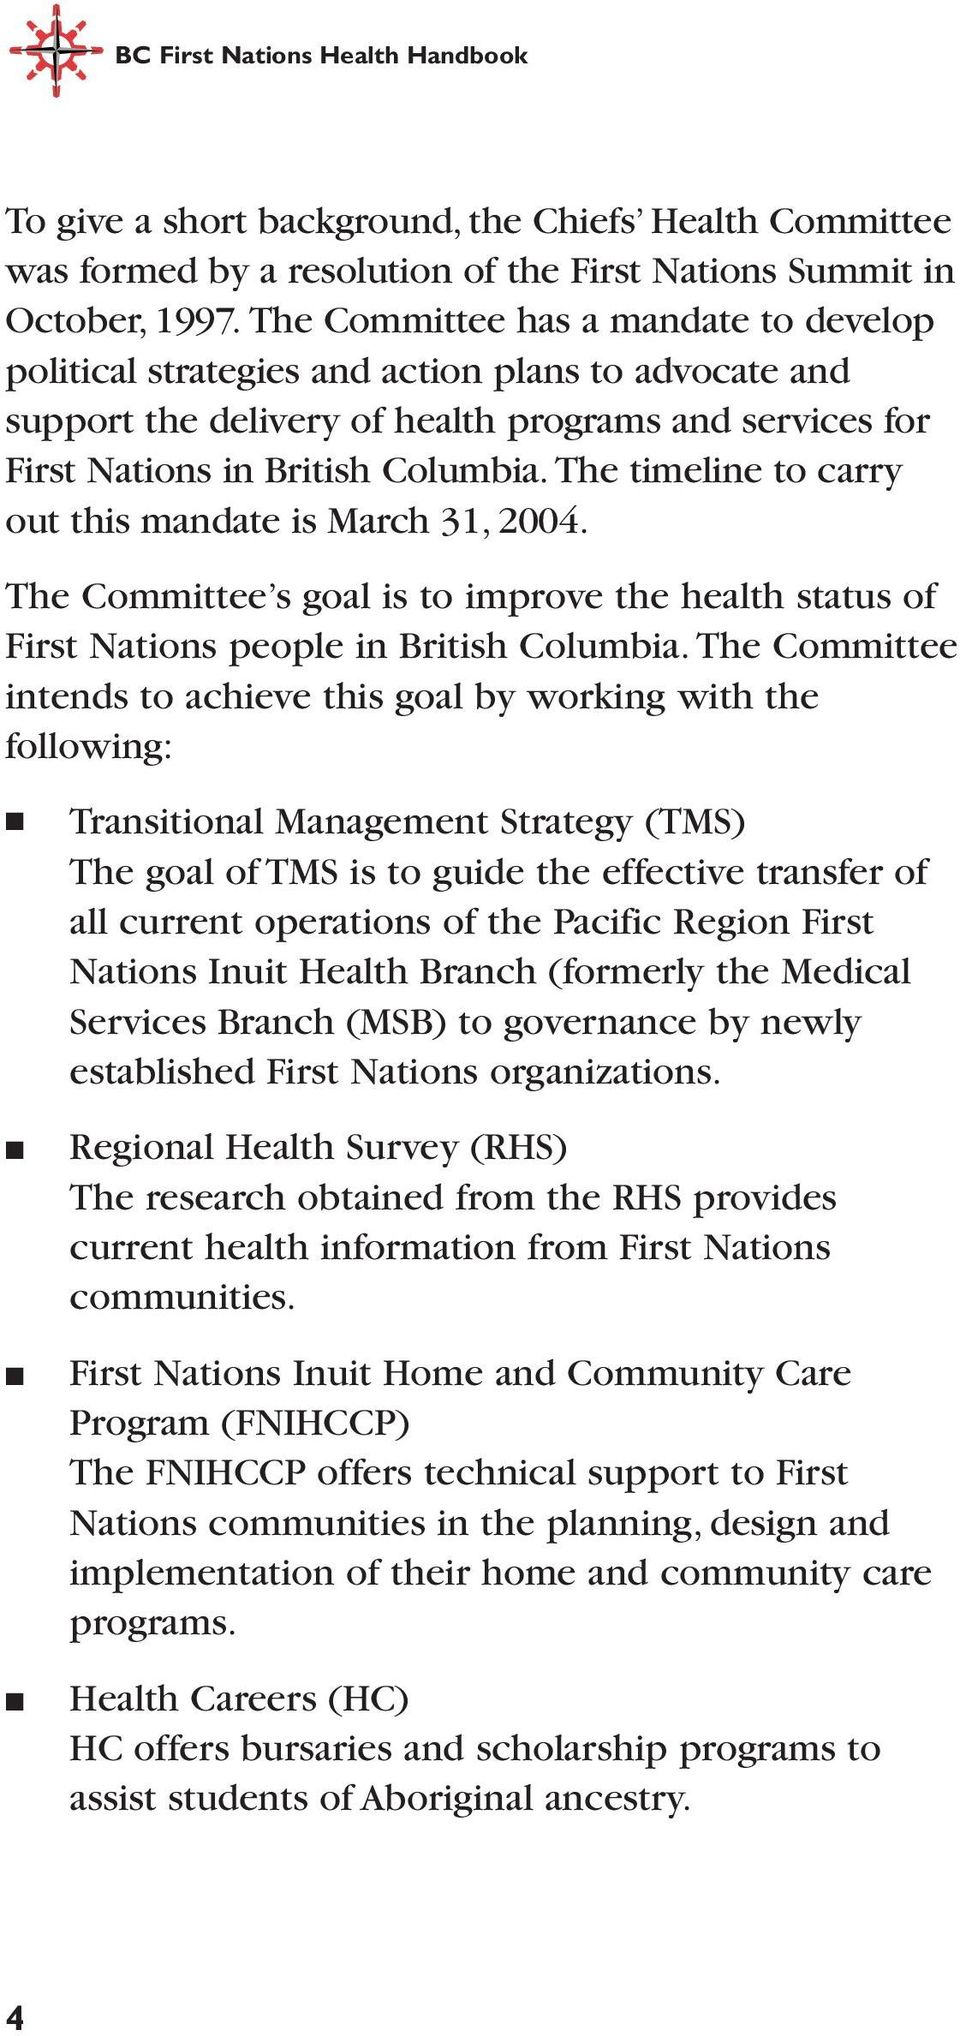 The timeline to carry out this mandate is March 31, 2004. The Committee s goal is to improve the health status of First Nations people in British Columbia.